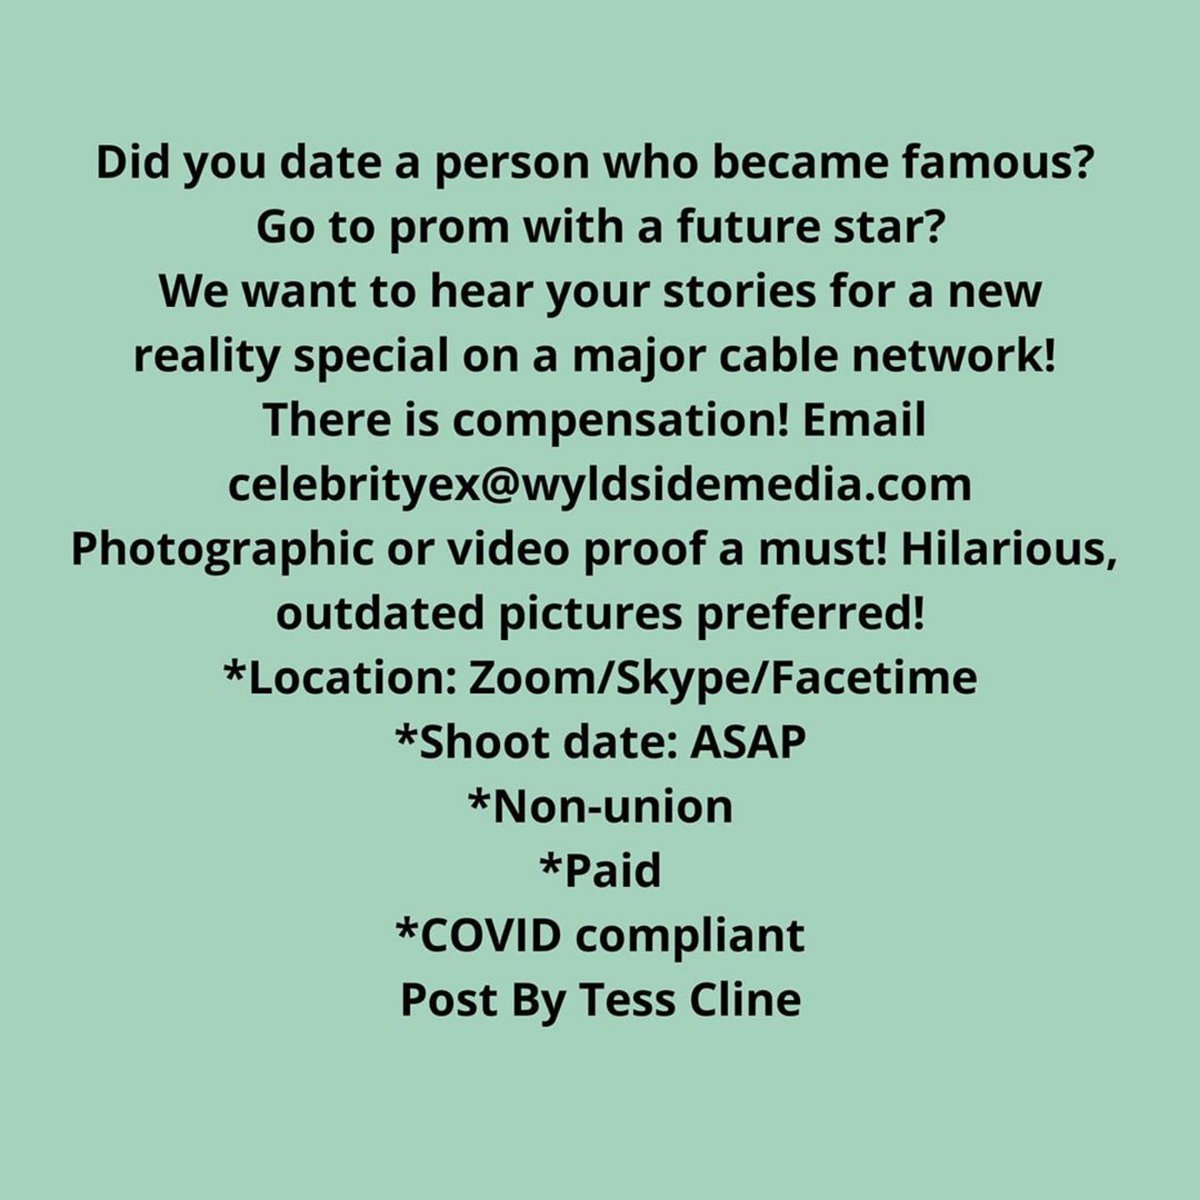 #NationwideCasting #DatingShow #RealityShow #CastingCall #Paid Did you date a person who became famous? Go to prom with future star? We want to hear your story for a new reality special on a major cable network!  Please email celebrityex@wyldsidemedia.com. #IVPromo https://t.co/WjEmGaHrNX